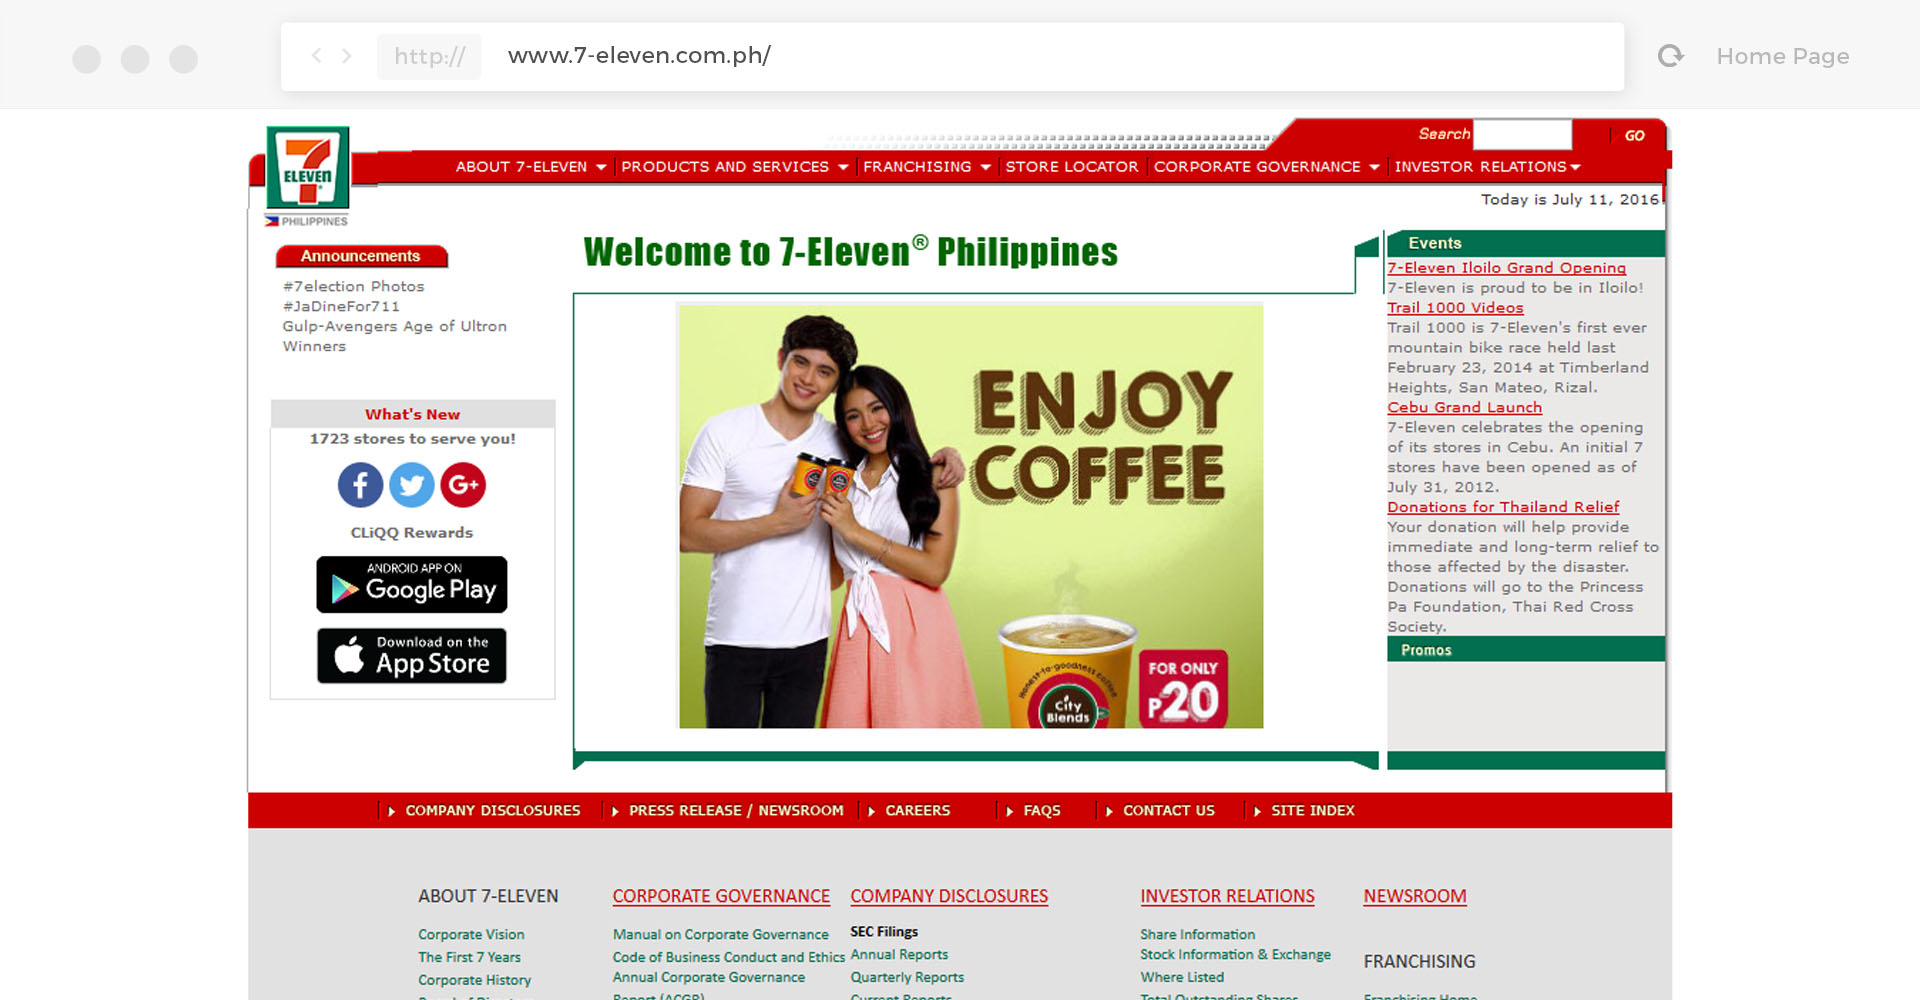 marketing plan of 7 eleven in the philippines